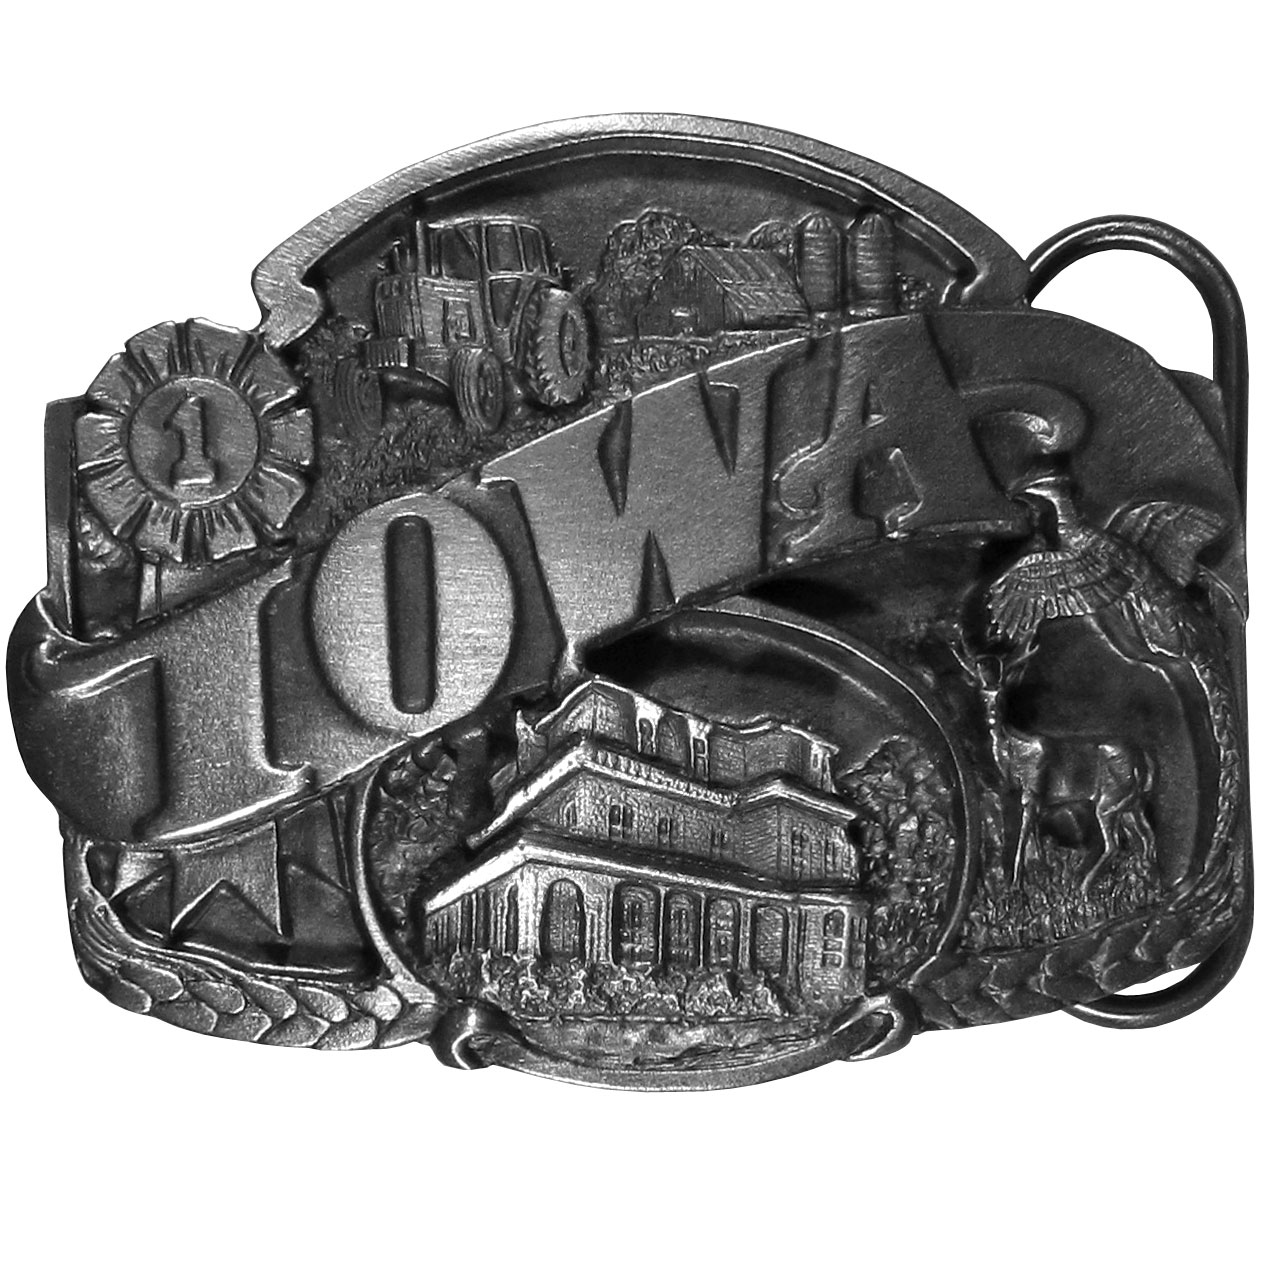 "Iowa Antiqued Belt Buckle - ""Do you love Iowa?  This belt buckle is for you!  """"Iowa"""" is written in bold across the center.  On the top is a state fair #1 ribbon and a farm with a tractor and barn and below is a pheasant, a deer, a plantation and chaffs of wheat.  On the back are the words, """"Iowa became the 29th state on Dec 28, 1846.  The state bird is the Eastern Goldfinch and the state tree is the Oak."""""""